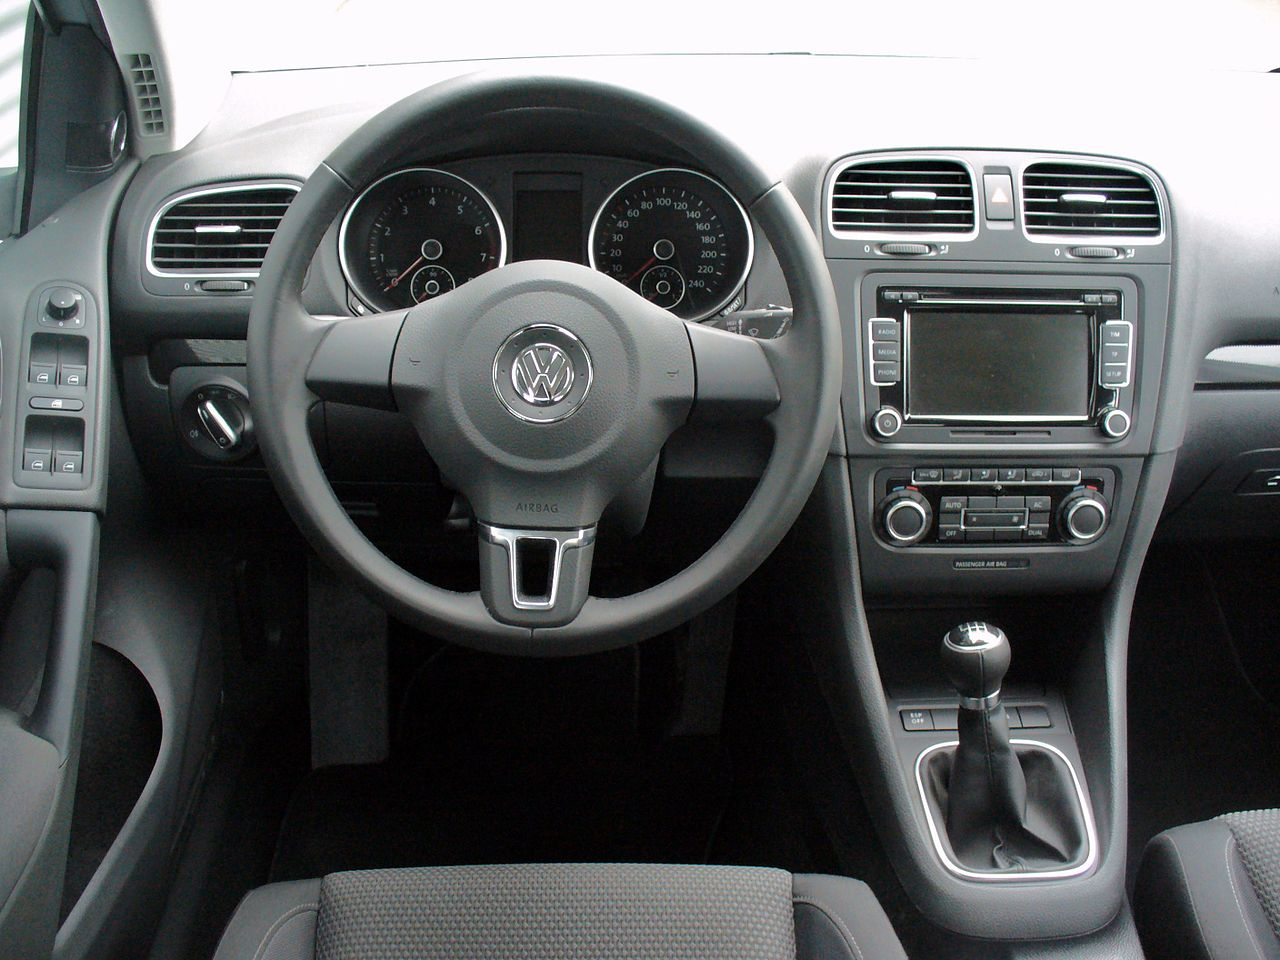 golf 6 r interieur 28 images vw golf vll gti 220ps interieur tacho videotistik vw golf 6 r. Black Bedroom Furniture Sets. Home Design Ideas